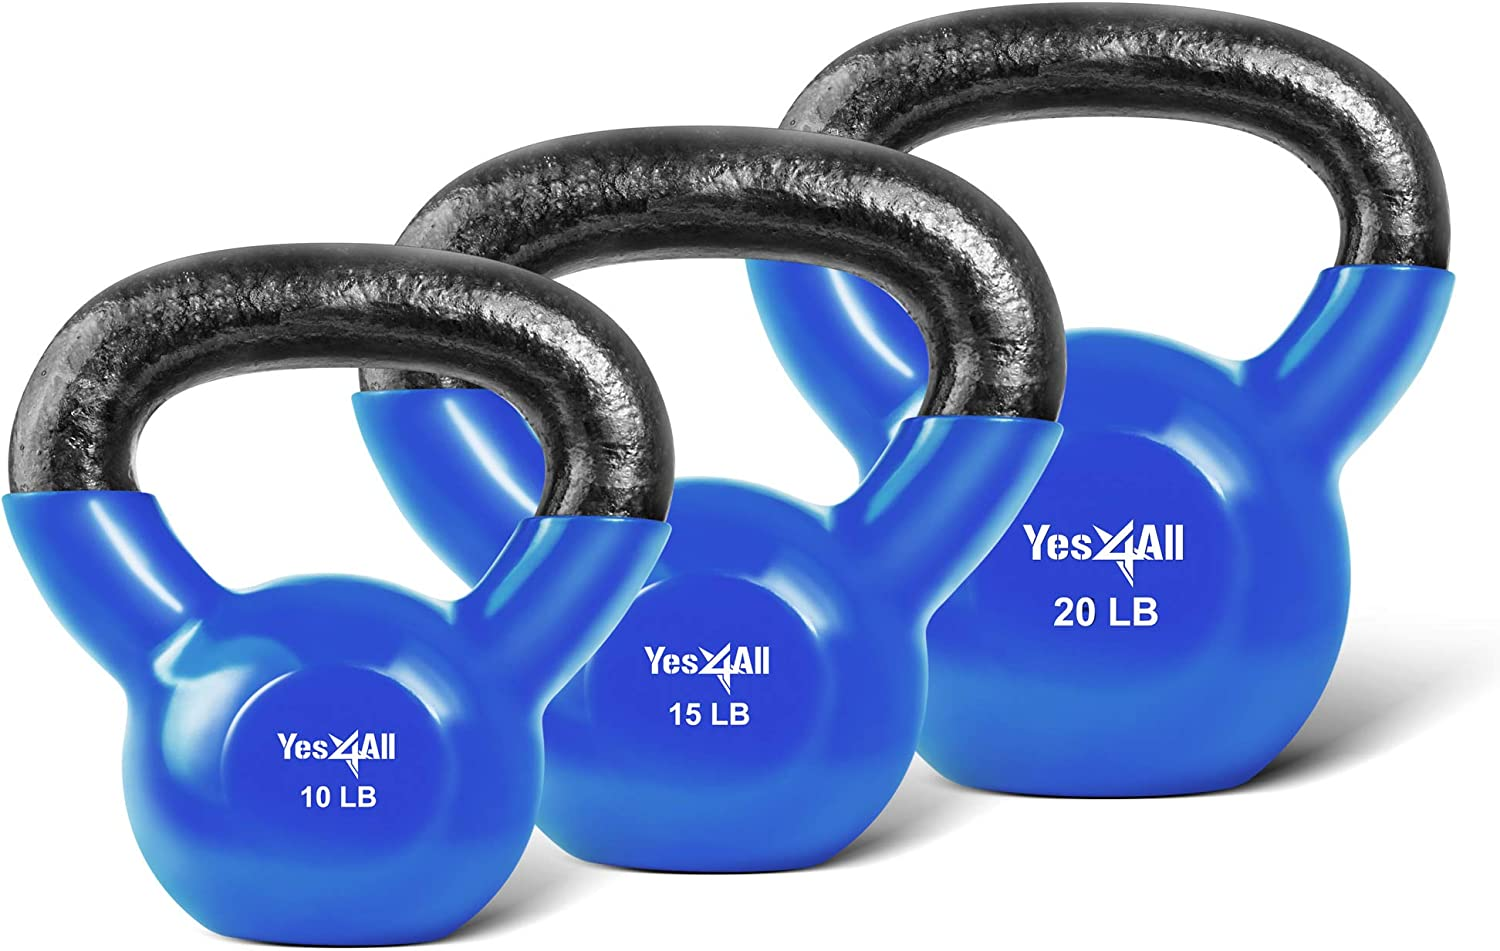 Yes4All Combo Special Vinyl Coated Kettlebell Weight Sets Weight Available 5, 10, 15, 20, 25, 30 lbs